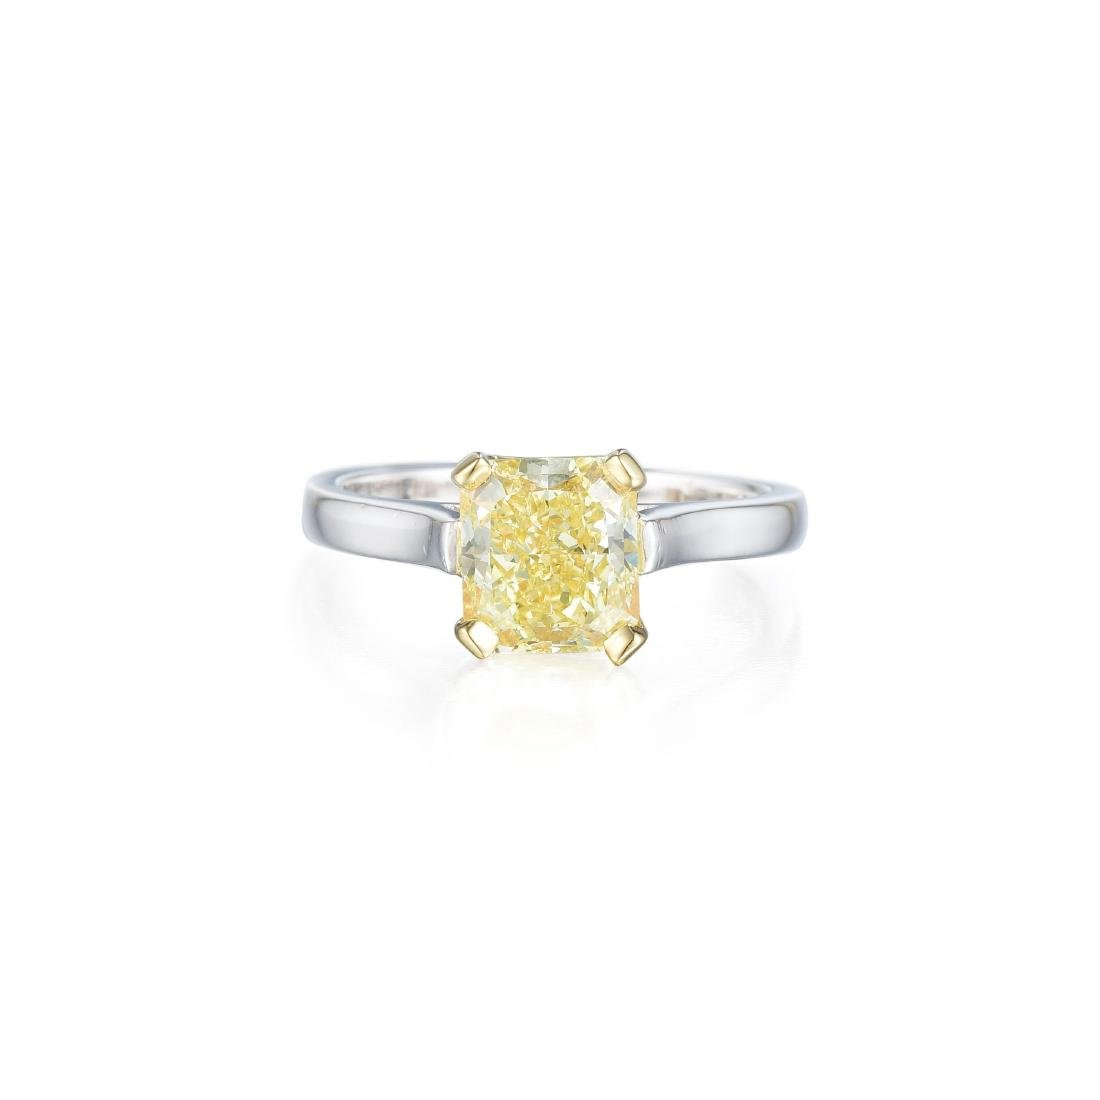 A 2.06-Carat Fancy Yellow Diamond Solitaire Ring